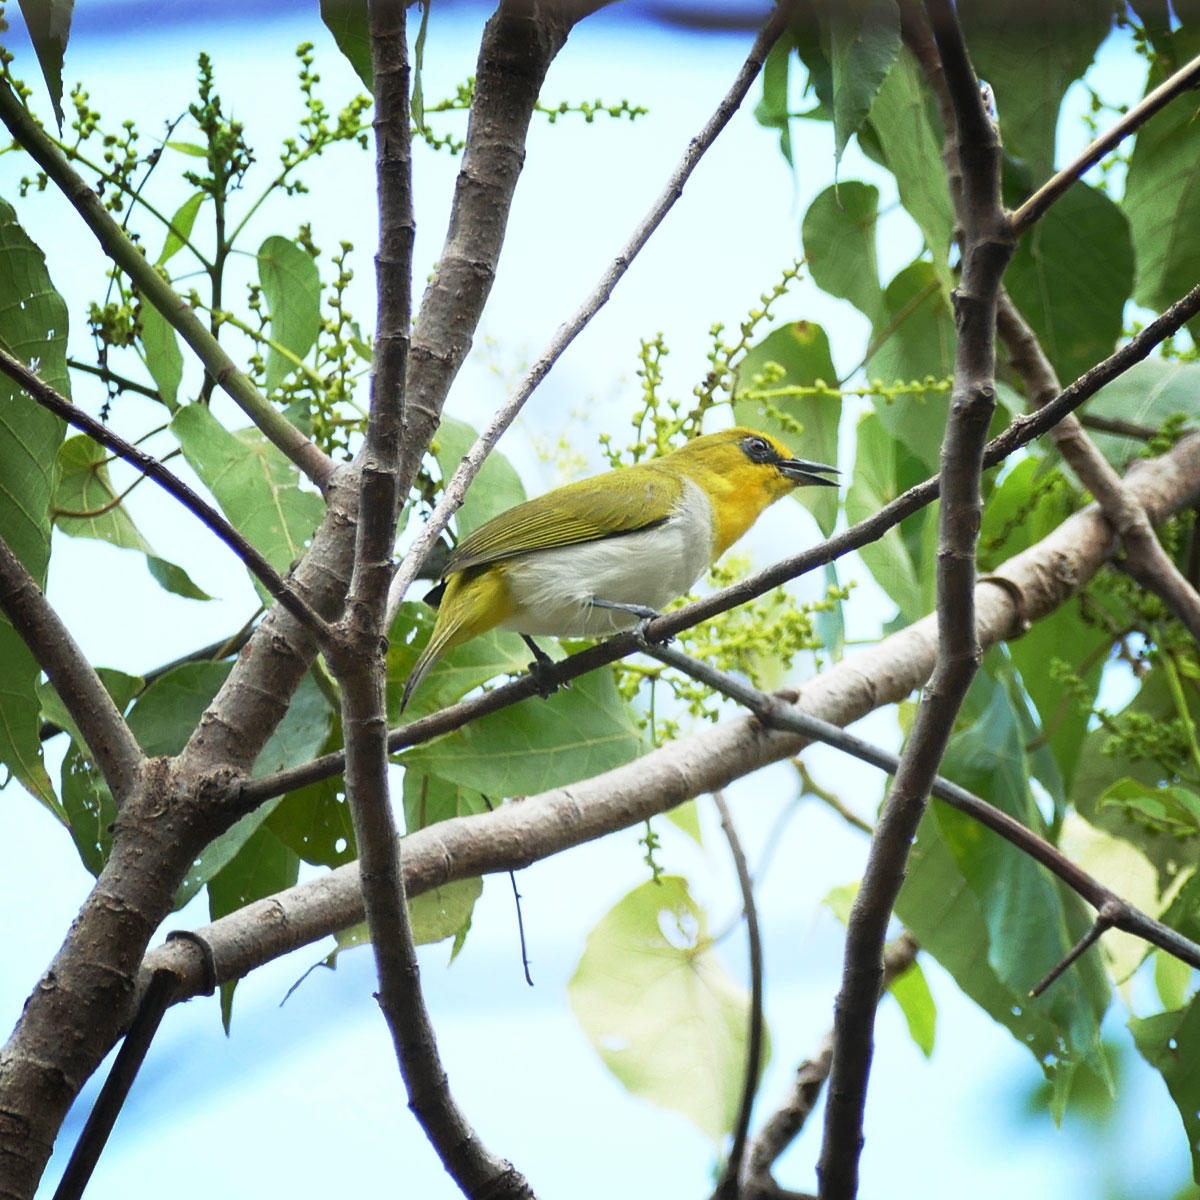 The Black-ringed White-eye is found only in southwest Sulawesi. Noah Strycker